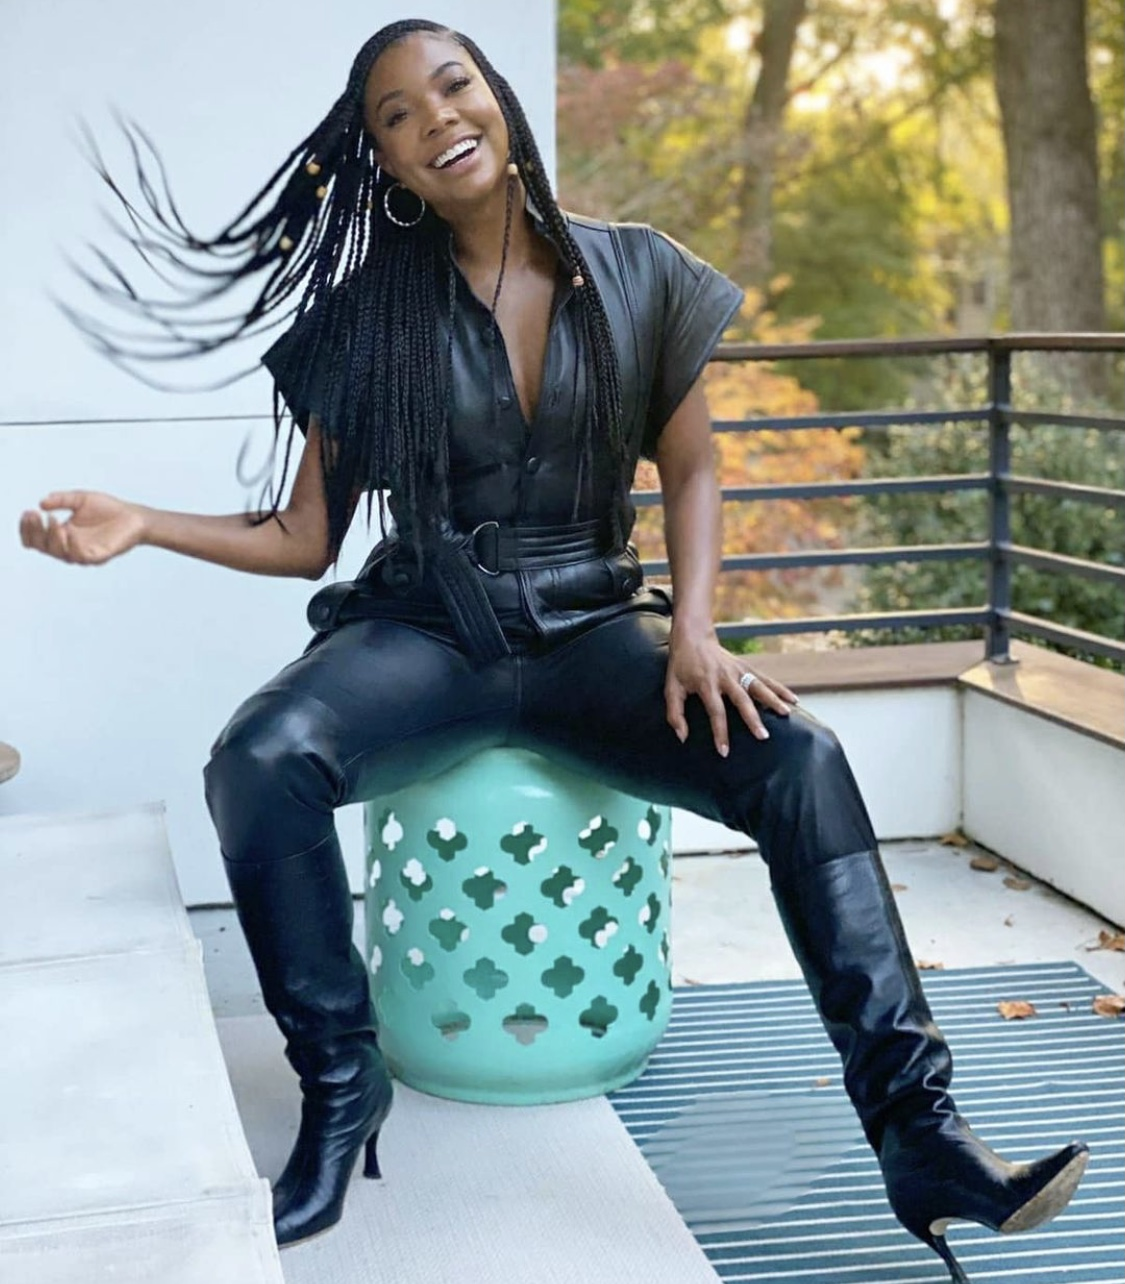 gabrielle-union-wade-instagram-birthday-outfits-fashion-style-peter-dundas-world